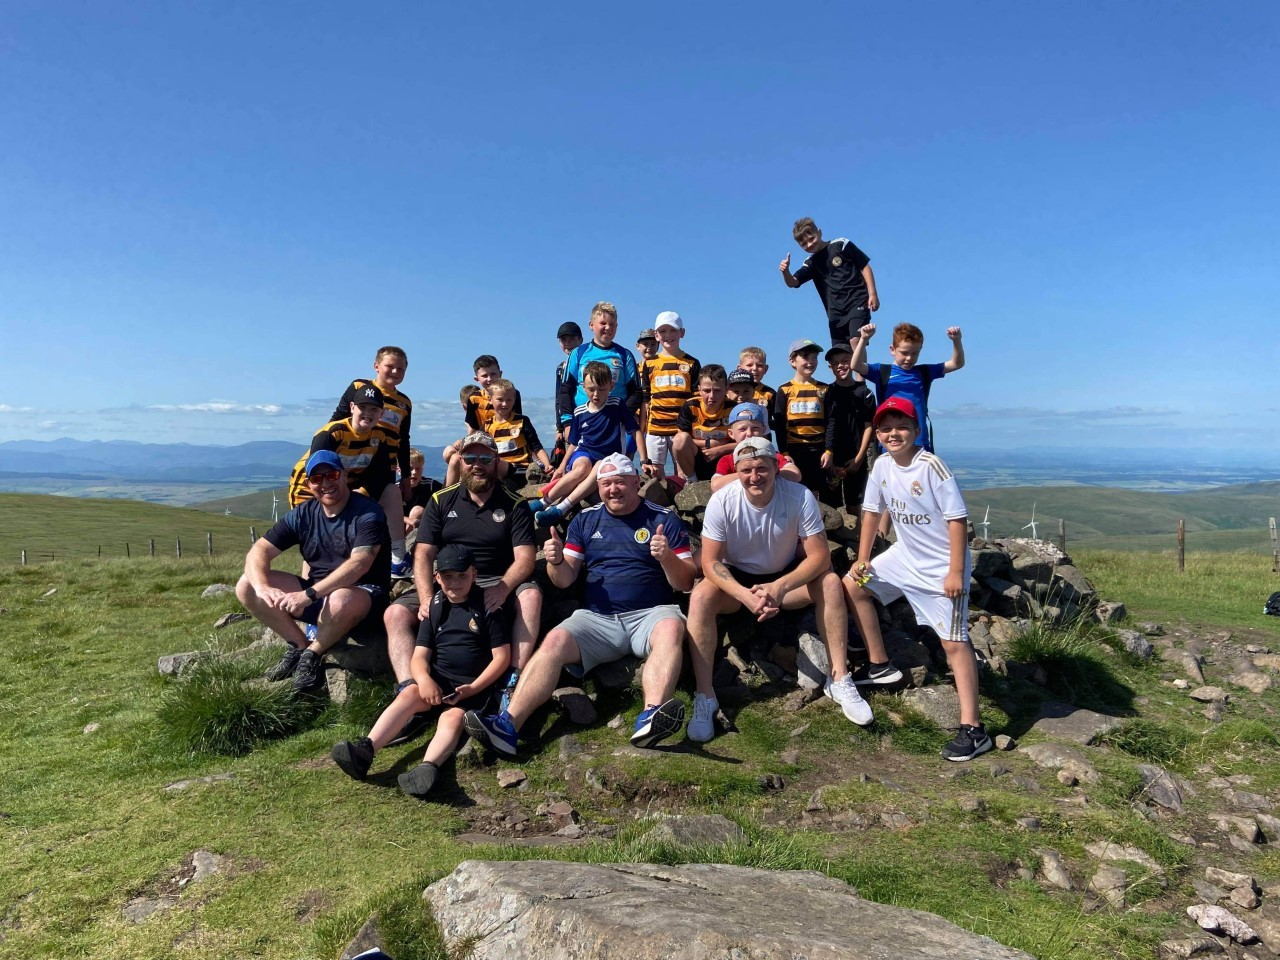 Young Wasps take to the hills to raise club funds